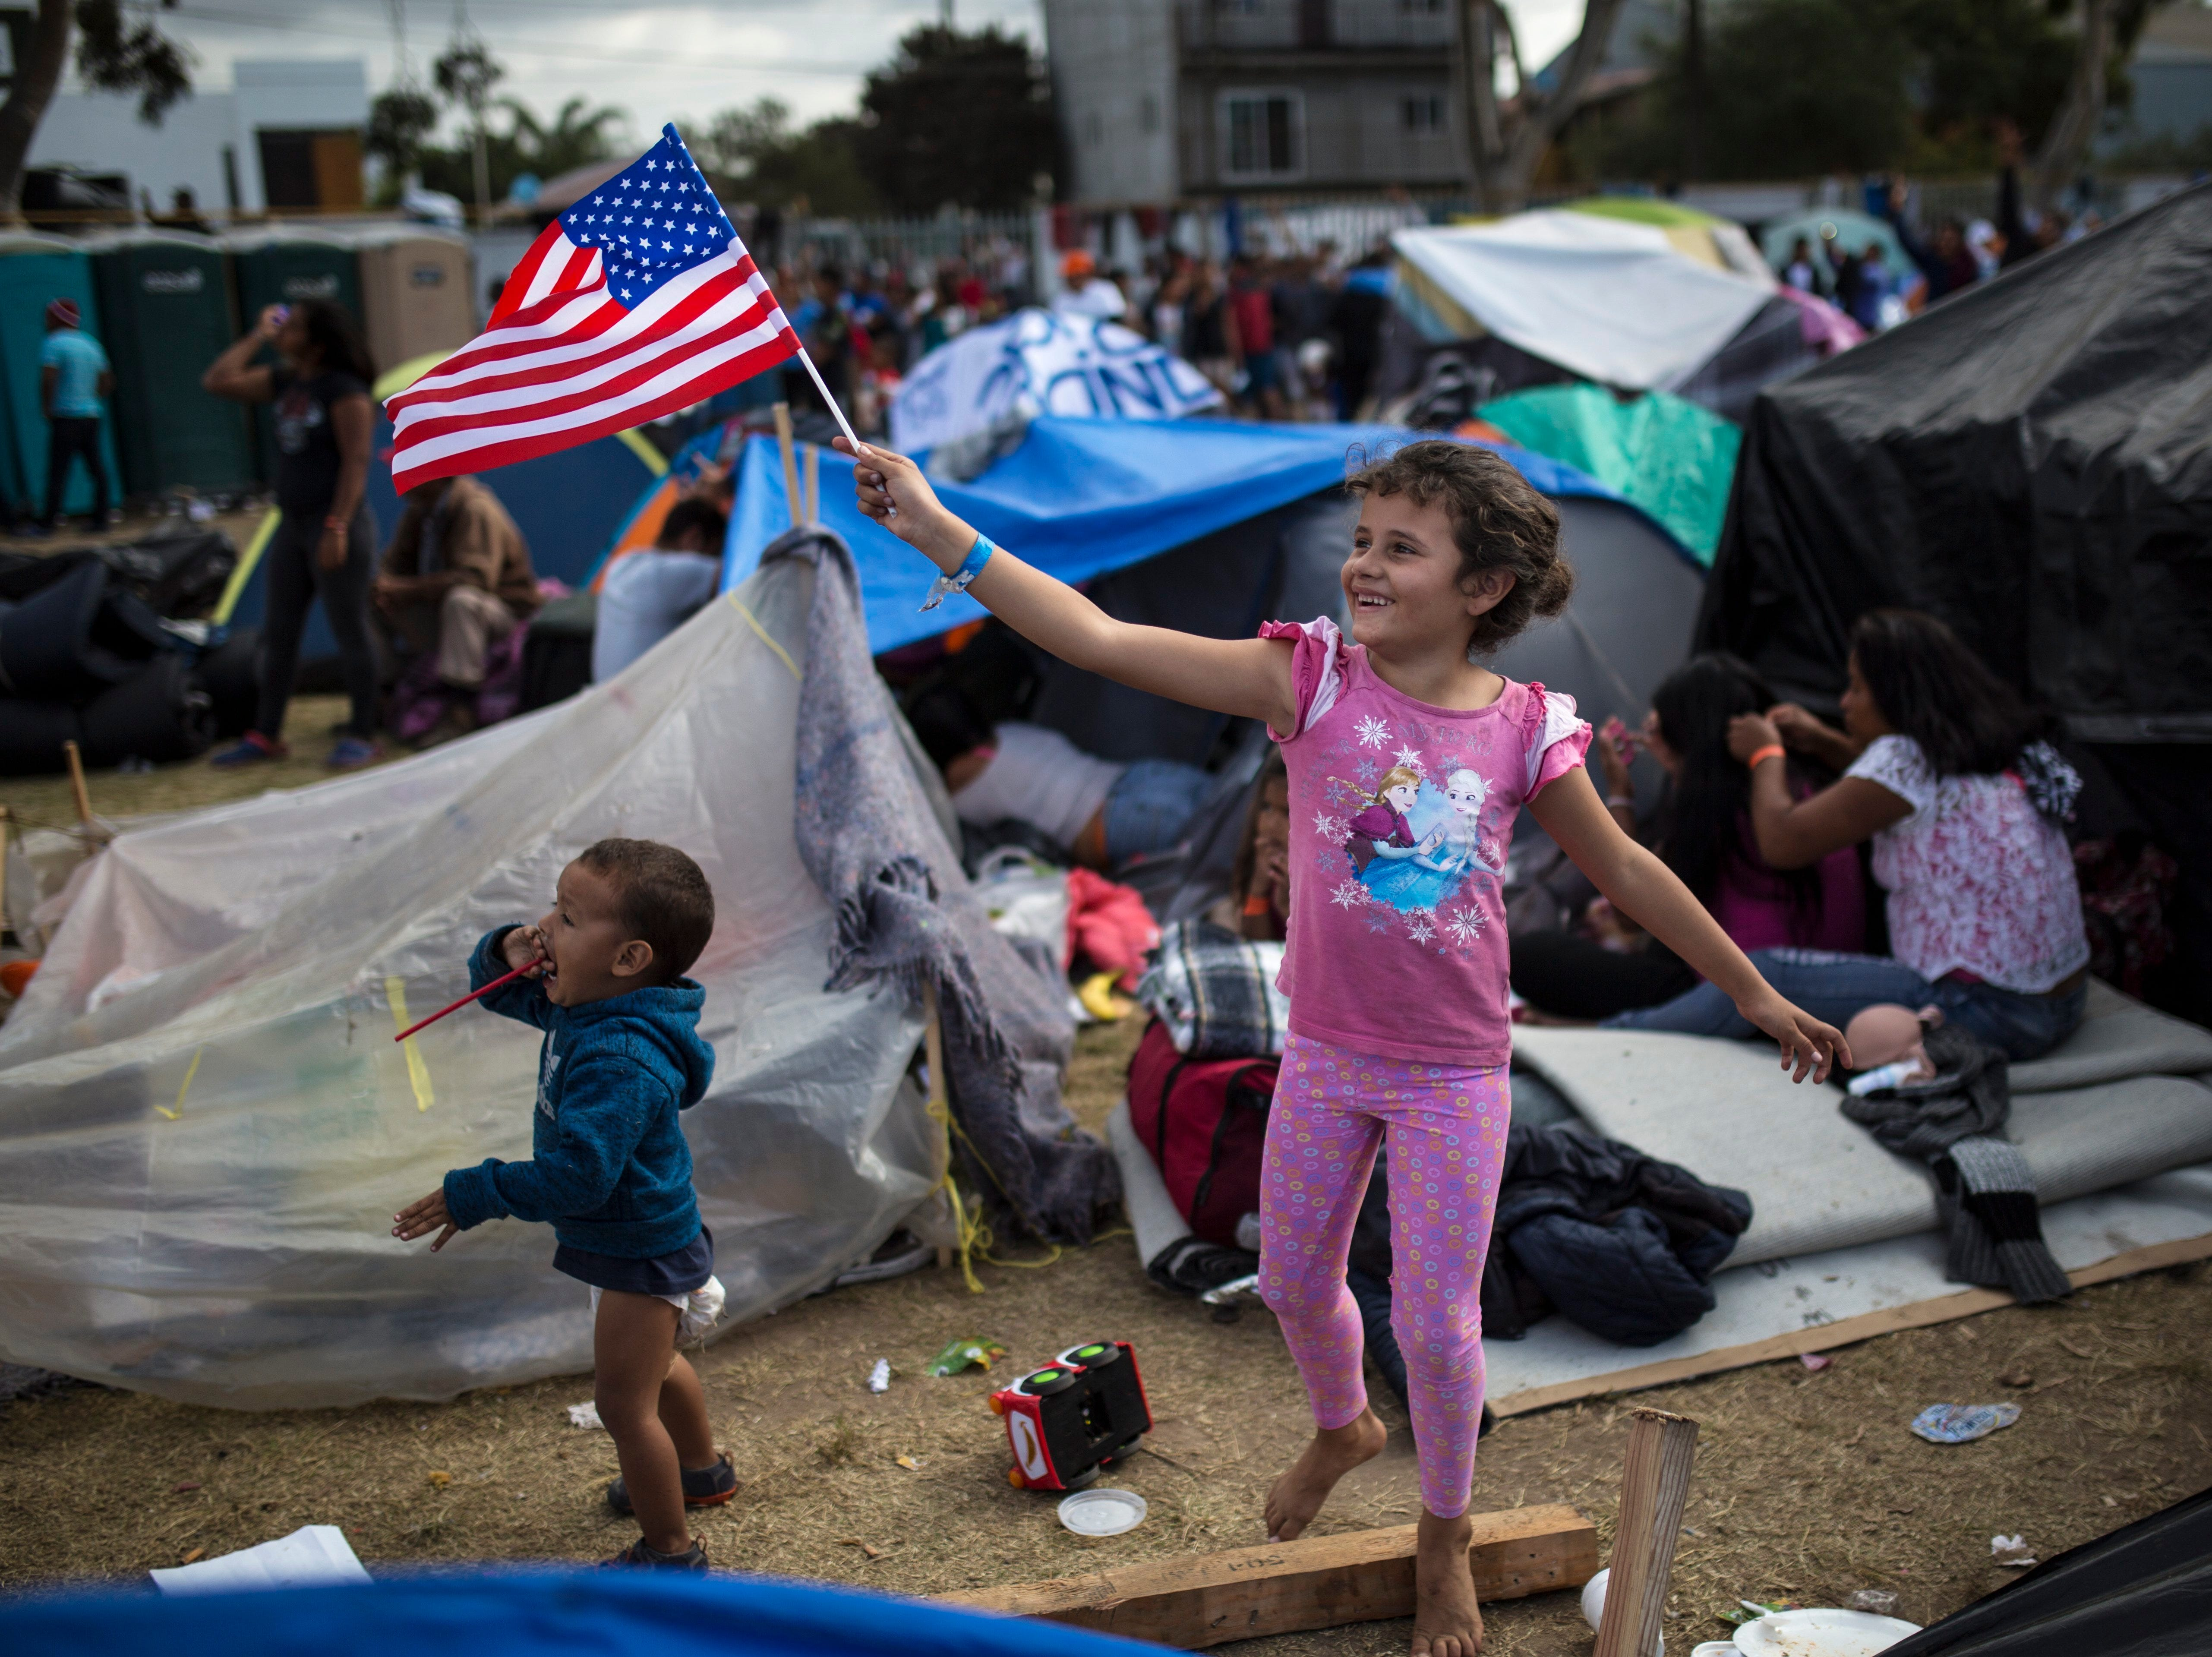 Seven-year-old Honduran migrant Genesis Belen Mejia Flores waves an American flag at U.S. border control helicopters flying overhead near the Benito Juarez Sports Center serving as a temporary shelter for Central American migrants, in Tijuana, Mexico, Saturday, Nov. 24, 2018. The mayor of Tijuana has declared a humanitarian crisis in his border city and says that he has asked the United Nations for aid to deal with the approximately 5,000 Central American migrants who have arrived in the city.